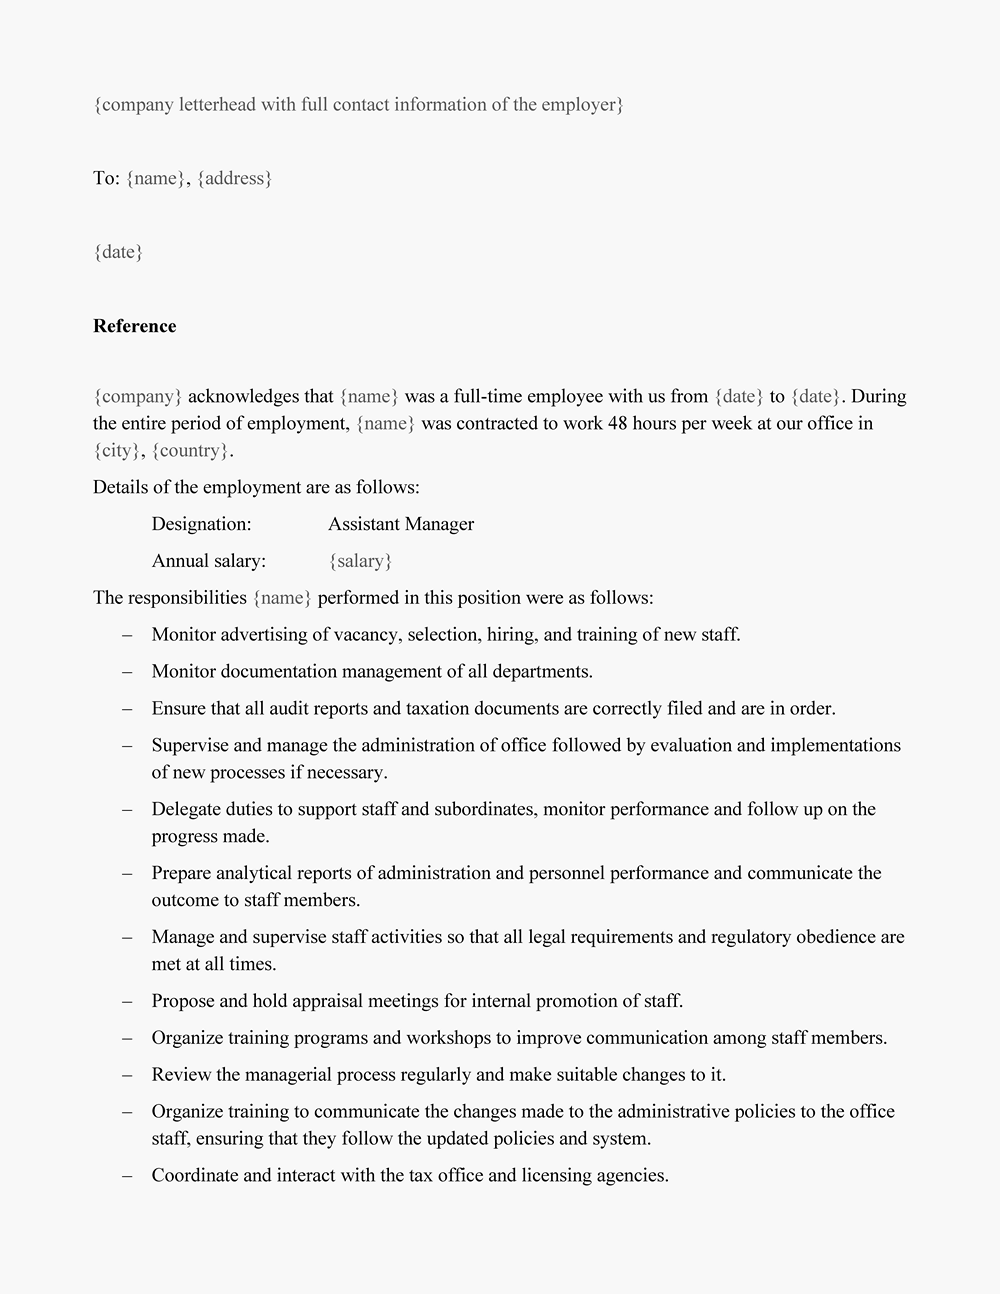 Reference Letter Sample For Employment from lptoronto.com